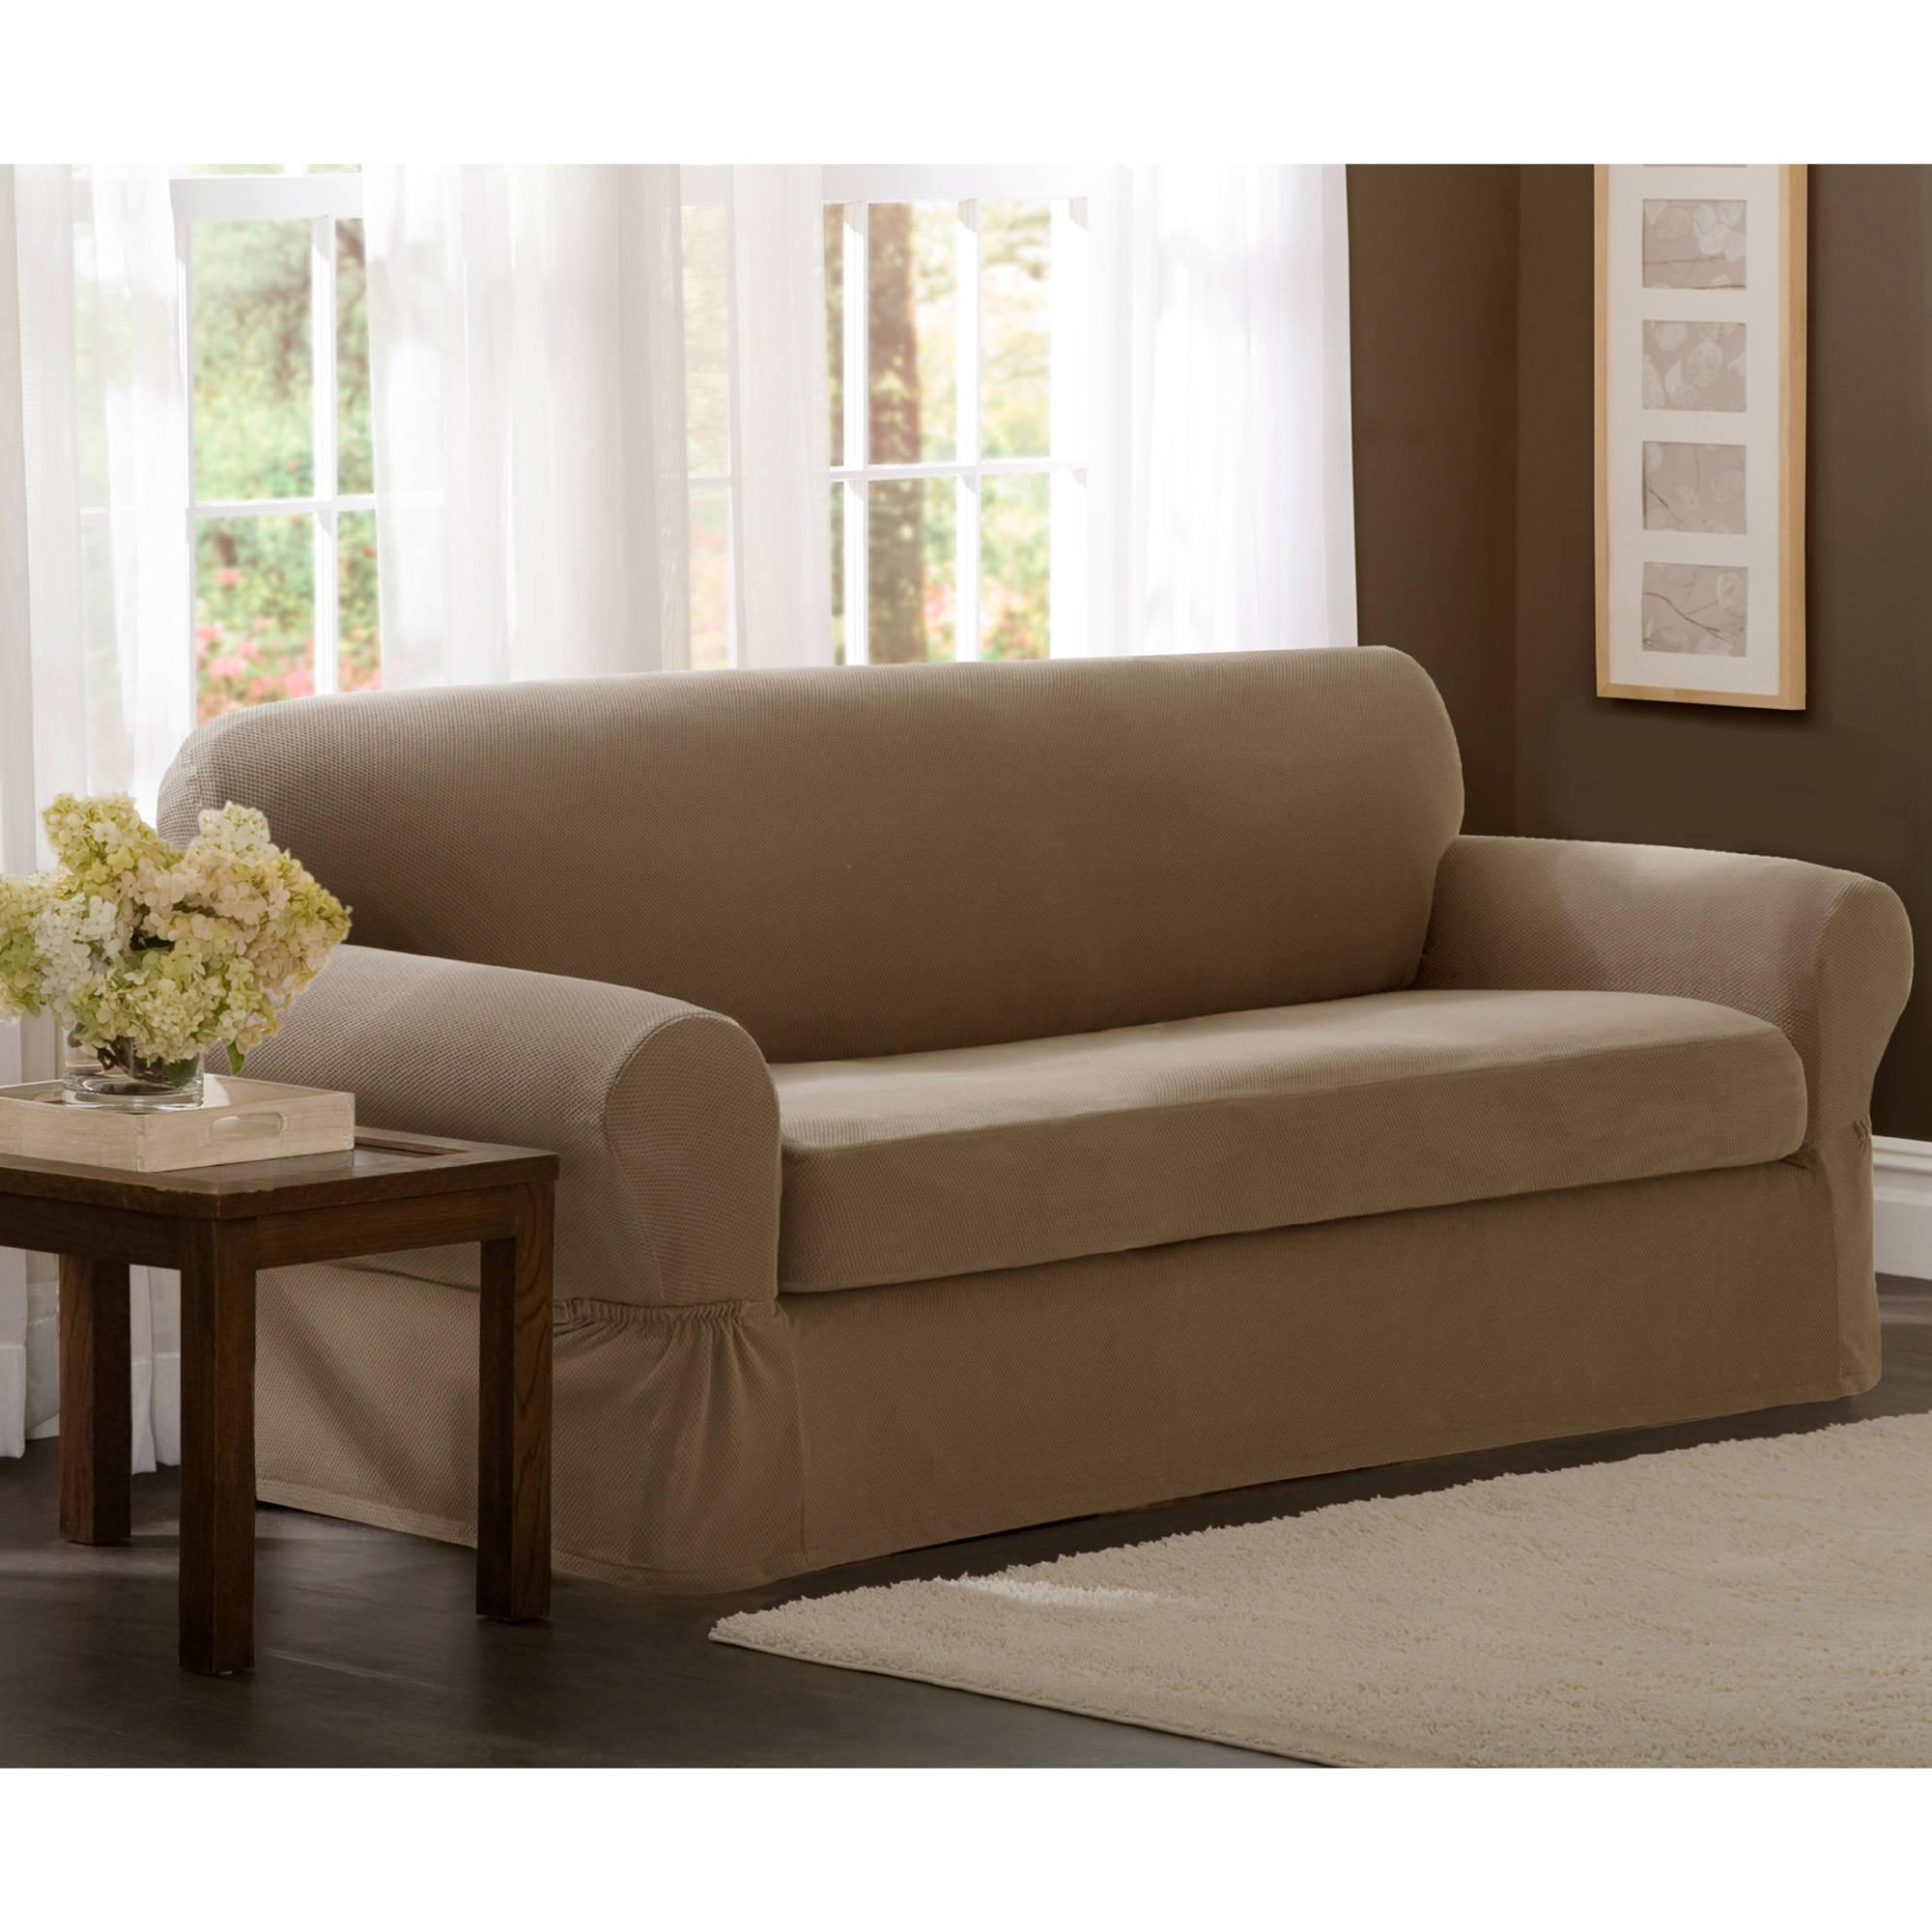 Maytex Stretch 2 Piece Sofa Slipcover – Walmart Throughout T Cushion Slipcovers For Large Sofas (View 7 of 20)